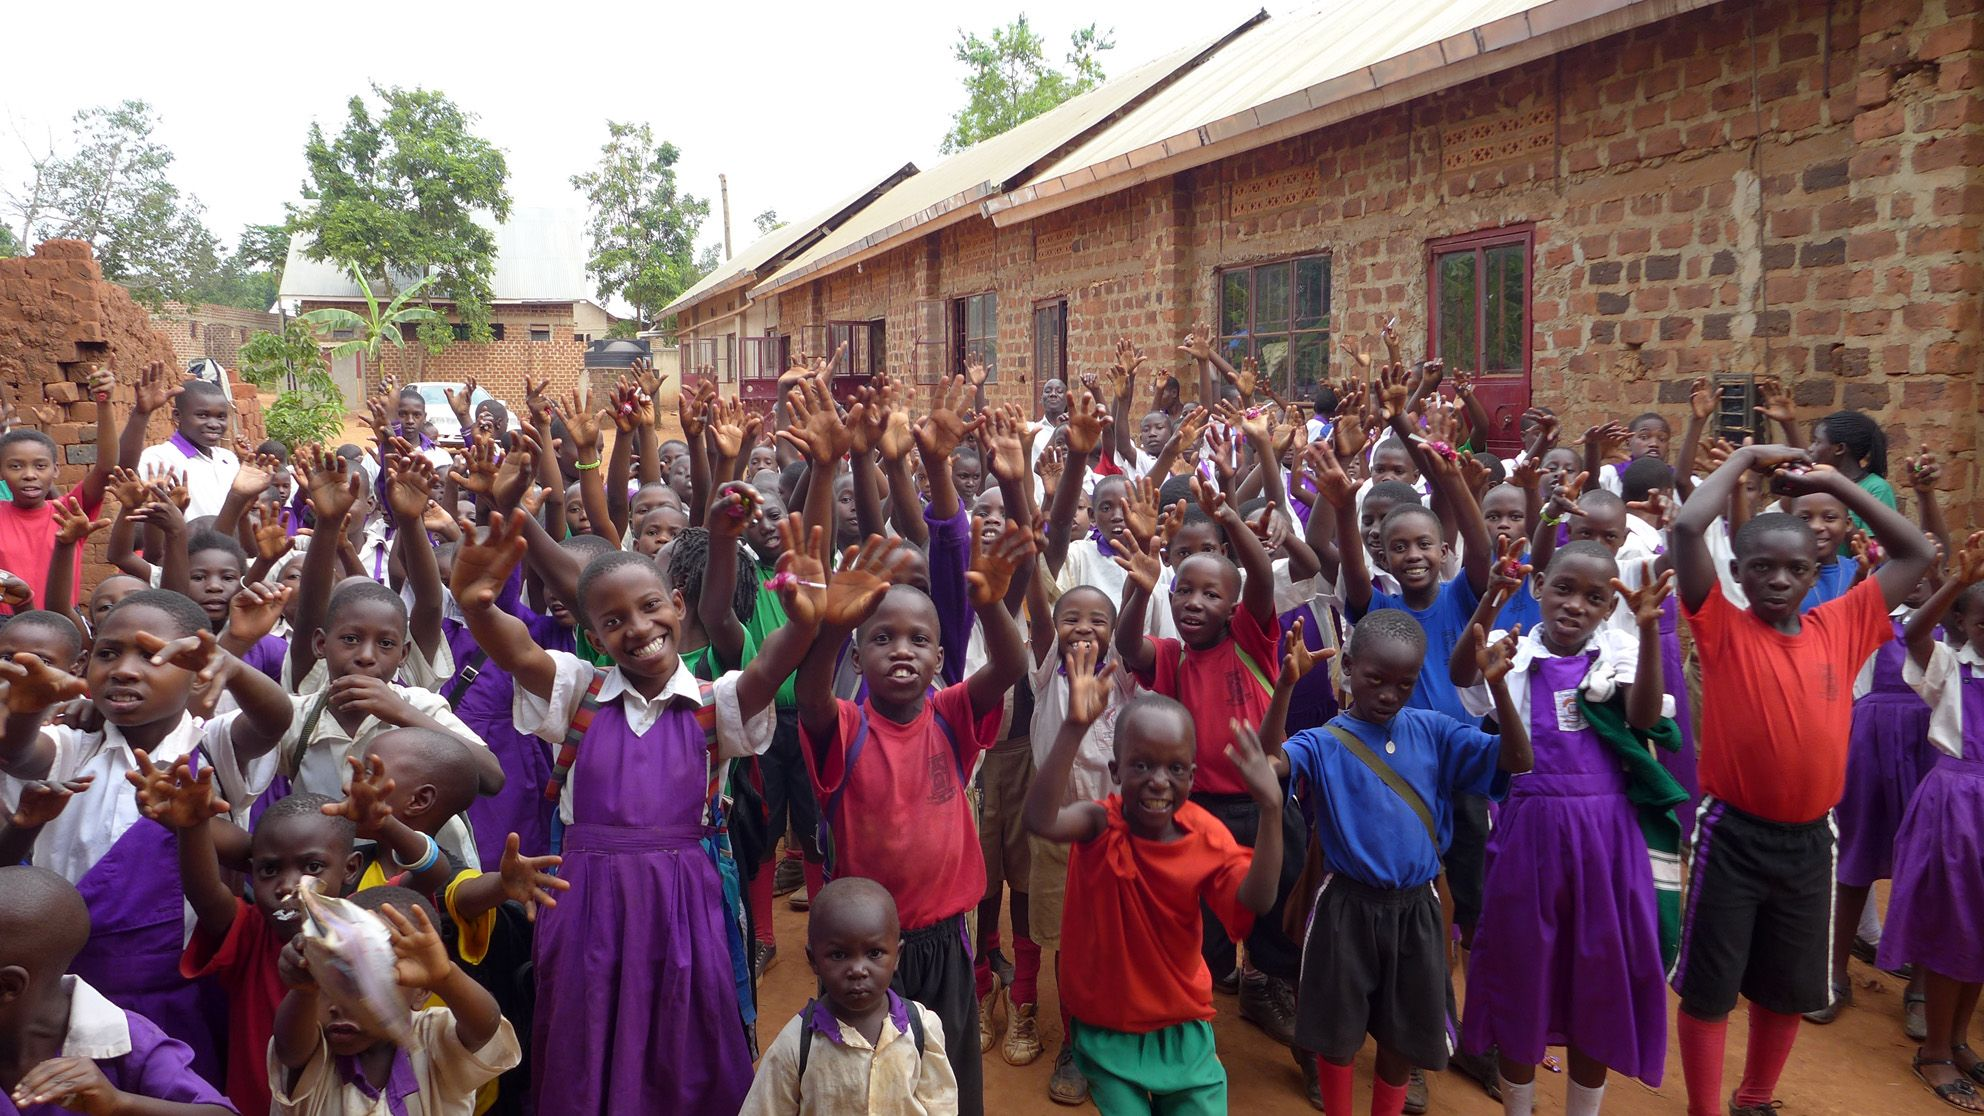 Volunteer Uganda Orphanage Program May to July 2013  Volunteer are needed to help at a rural orphanage outside the capital city. These children have lost parents to Aids, some have been abandoned, and they know abuse, hunger and fear. The orphanage strives to provide a better future for some of the most vulnerable children in Uganda. The children range in age from toddlers to pre-teens. https://www.abroaderview.org/